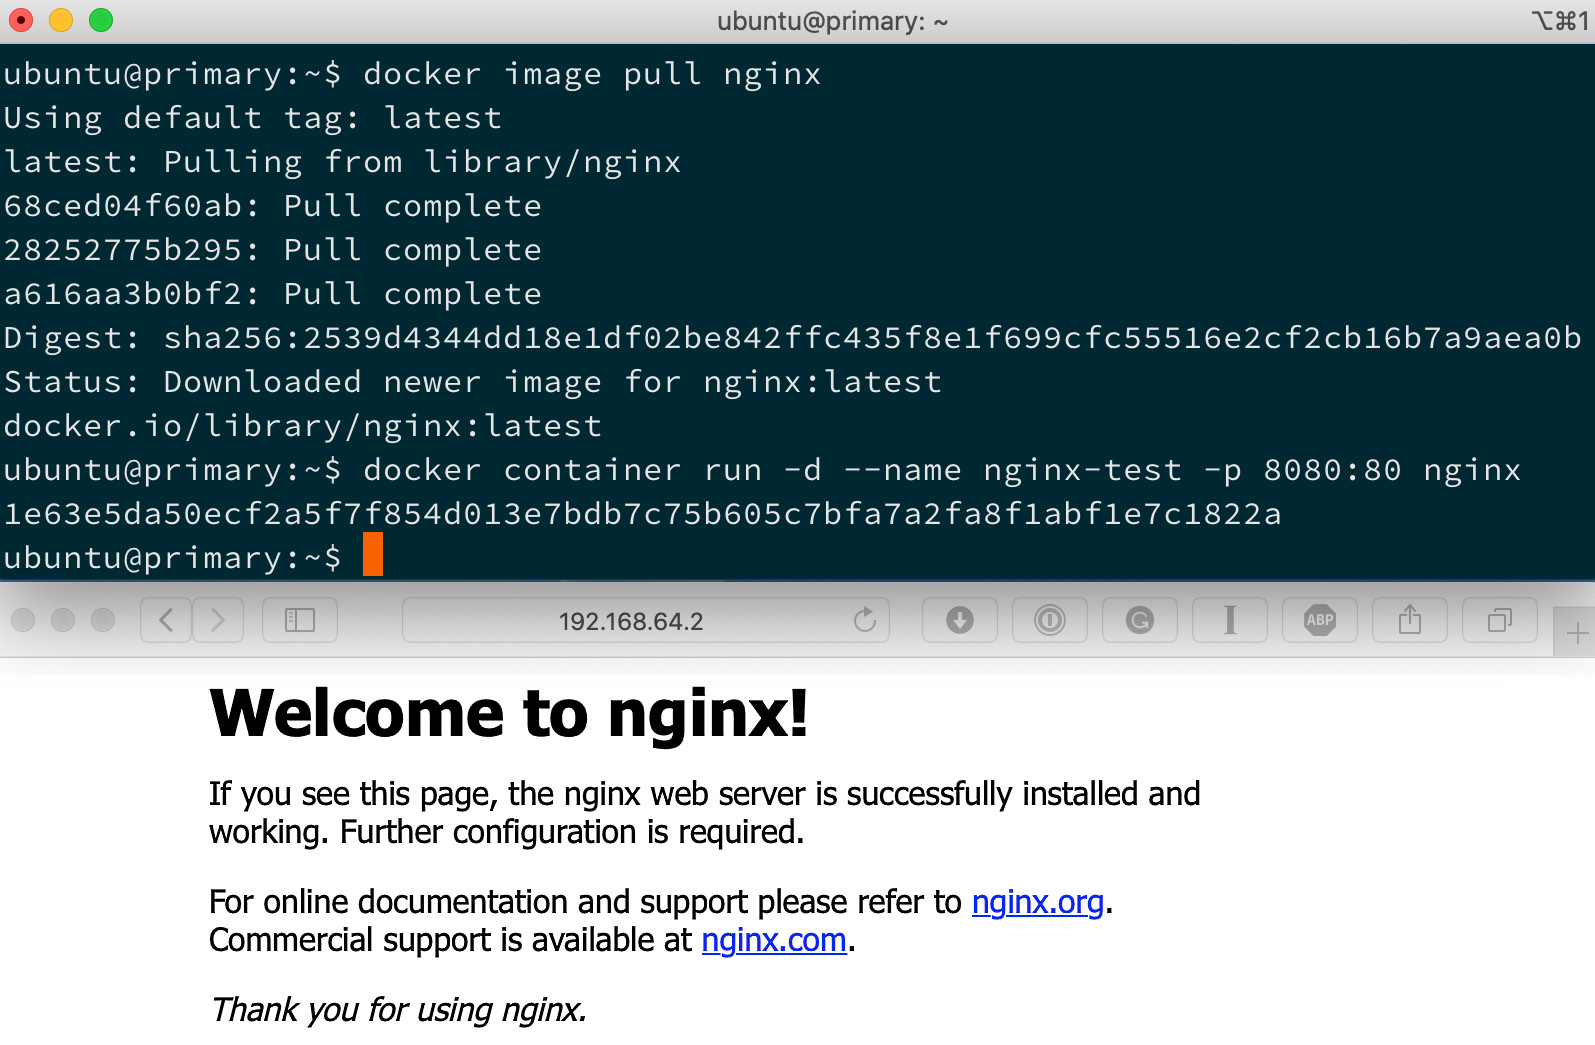 Figure 1.13 – Output of docker image pull nginx on Linux